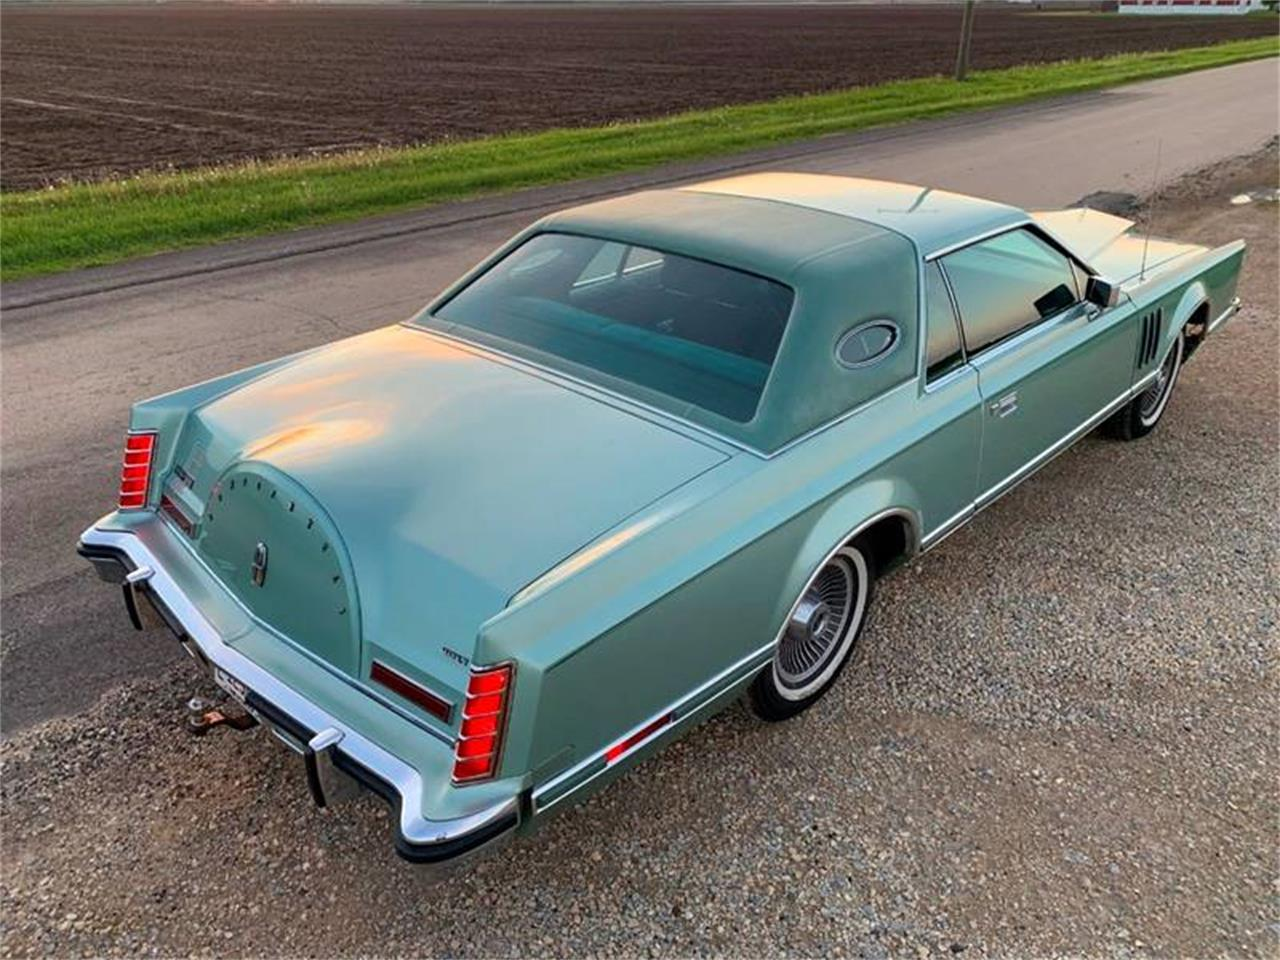 Large Picture of 1978 Lincoln Continental located in Illinois - $15,000.00 - QGWL